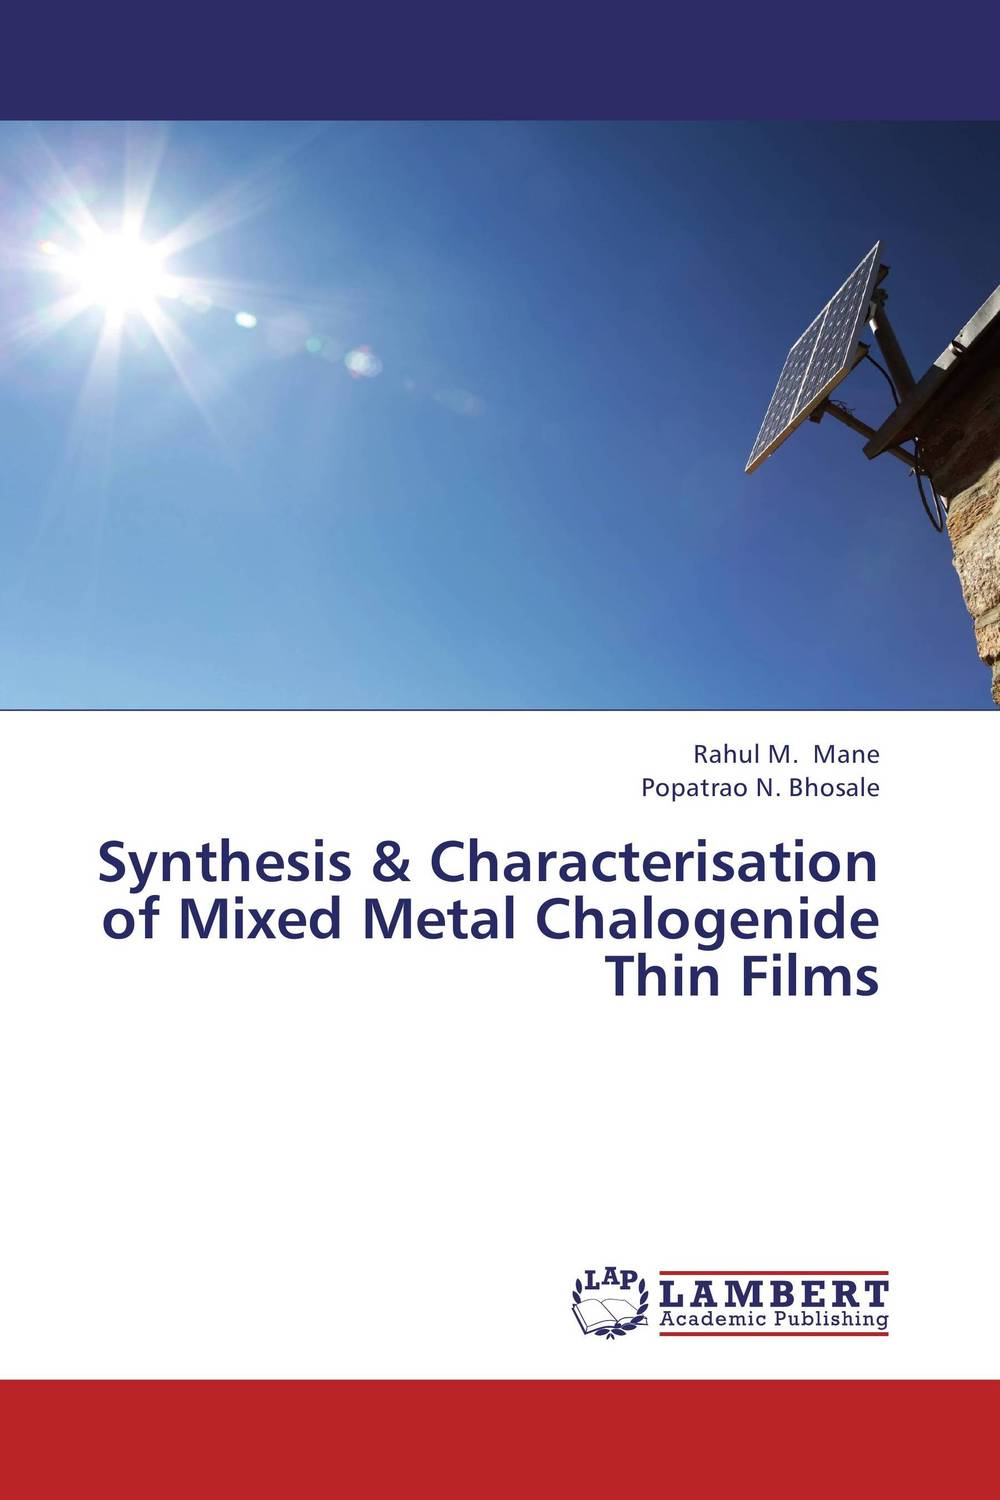 Synthesis & Characterisation of Mixed Metal Chalogenide Thin Films rakesh kumar tiwari and rajendra prasad ojha conformation and stability of mixed dna triplex